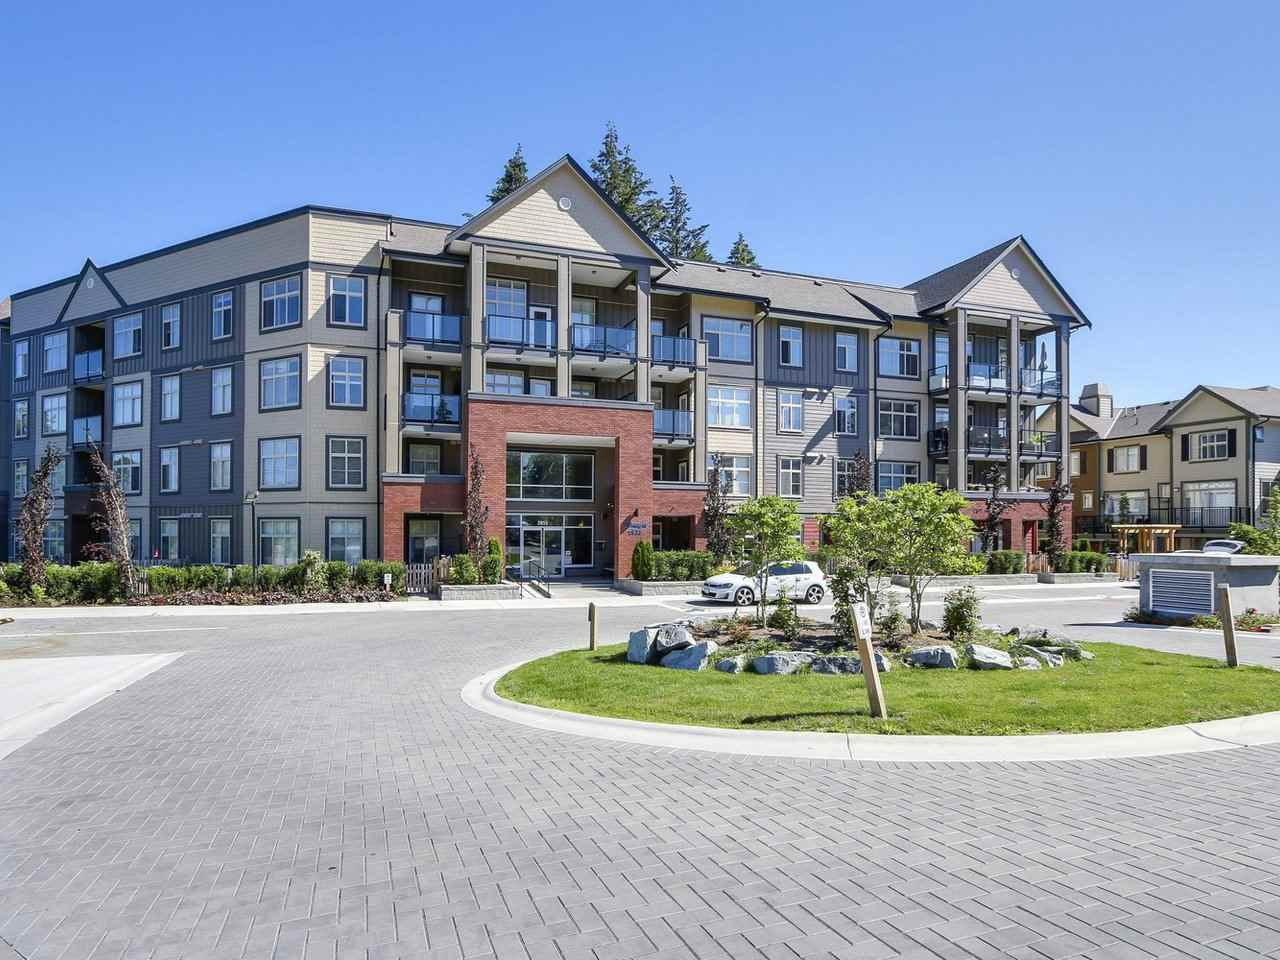 "Main Photo: 306 2855 156 Street in Surrey: Grandview Surrey Condo for sale in ""THE HEIGHTS CONDOS BY LAKEWOOD"" (South Surrey White Rock)  : MLS®# R2181903"